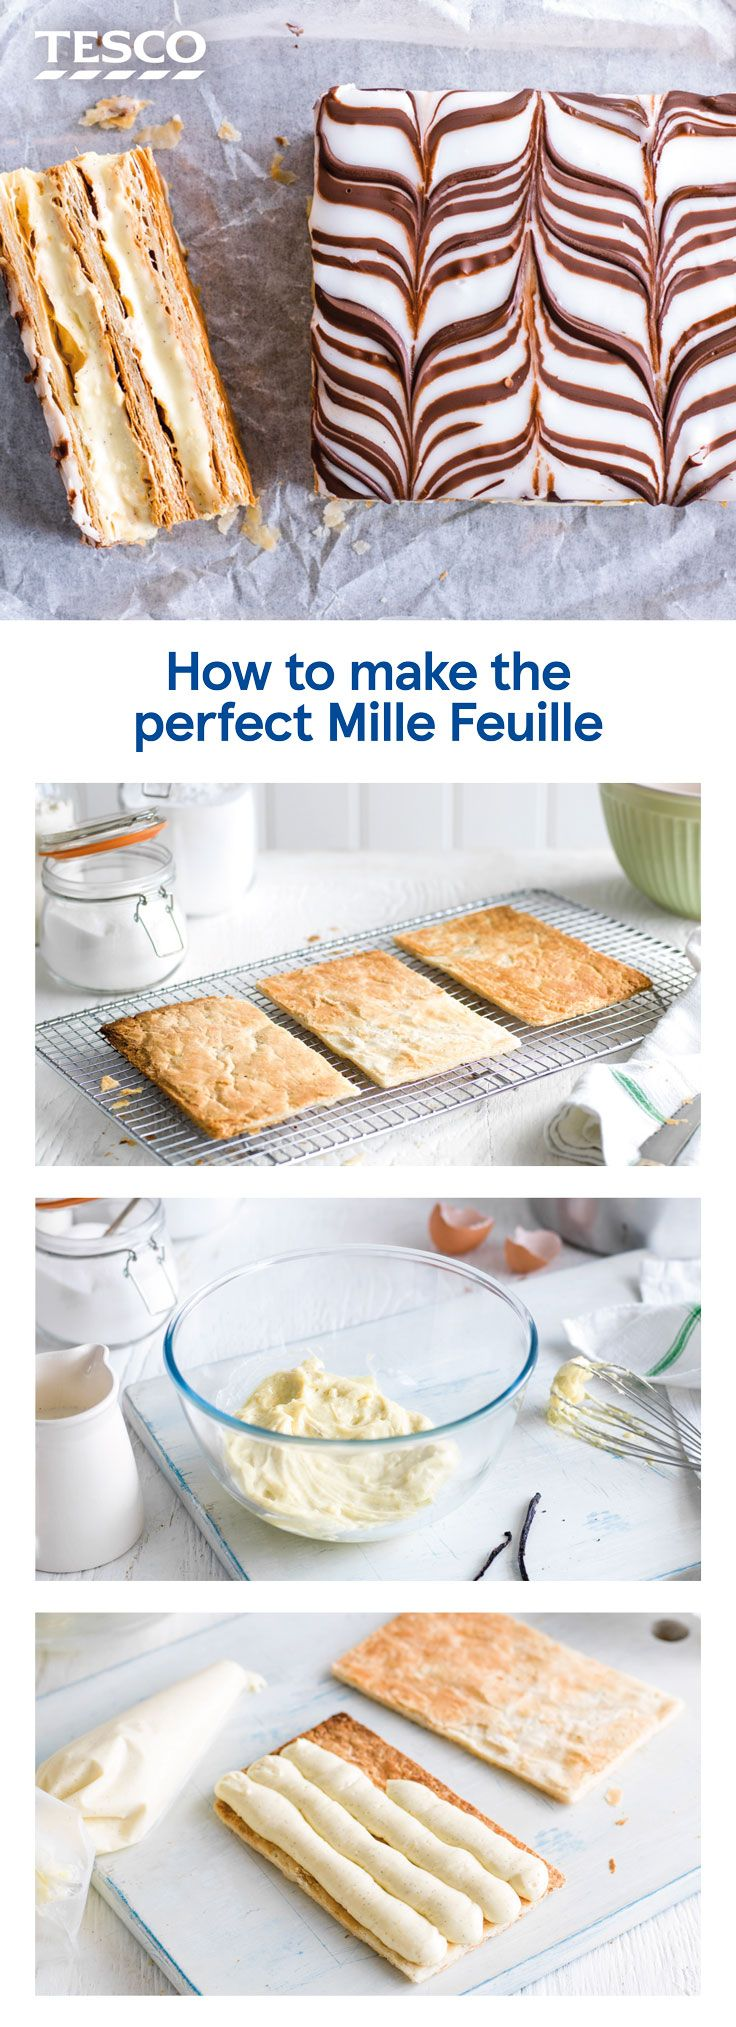 Serve up a stylish pud with our step-by-step recipe for how to make mille feuille. This classic French dessert of rich crème pâtissière sandwiched between crisp, flaky puff pastry is a great way to show off your baking skills. | Tesco